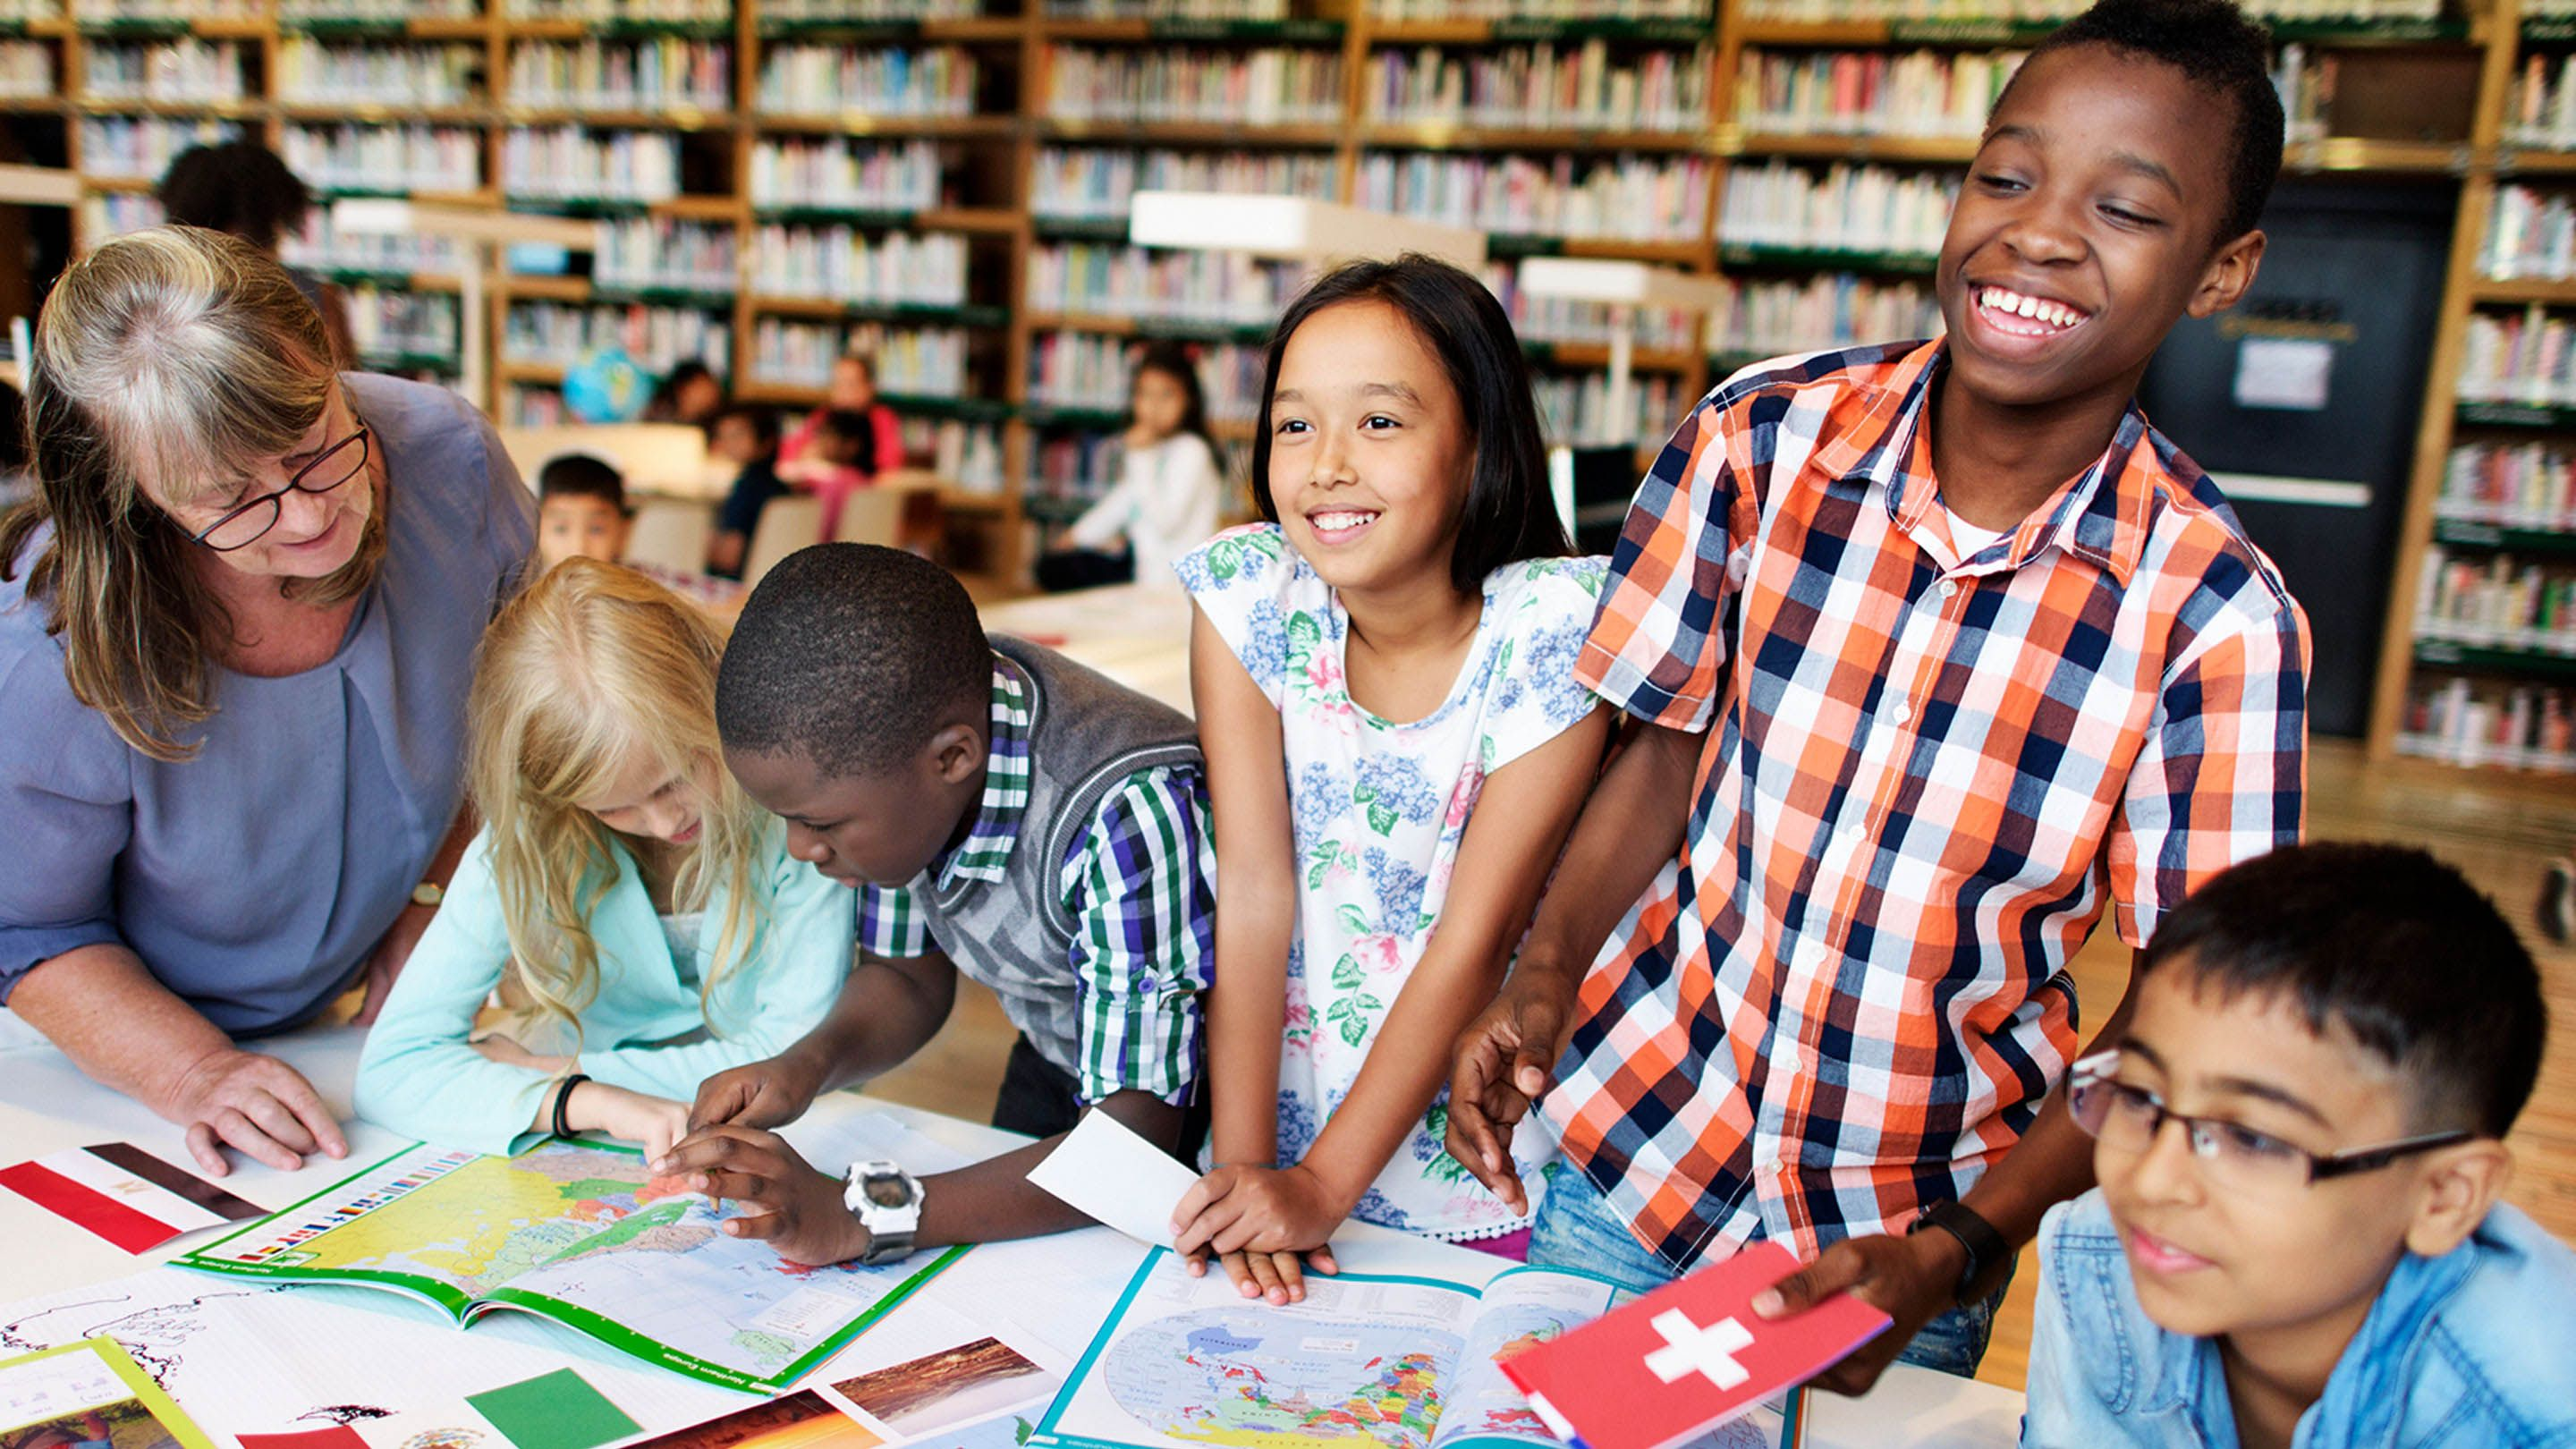 Five diverse, young students and a female librarian are standing by a table with atlases spread open in a library.